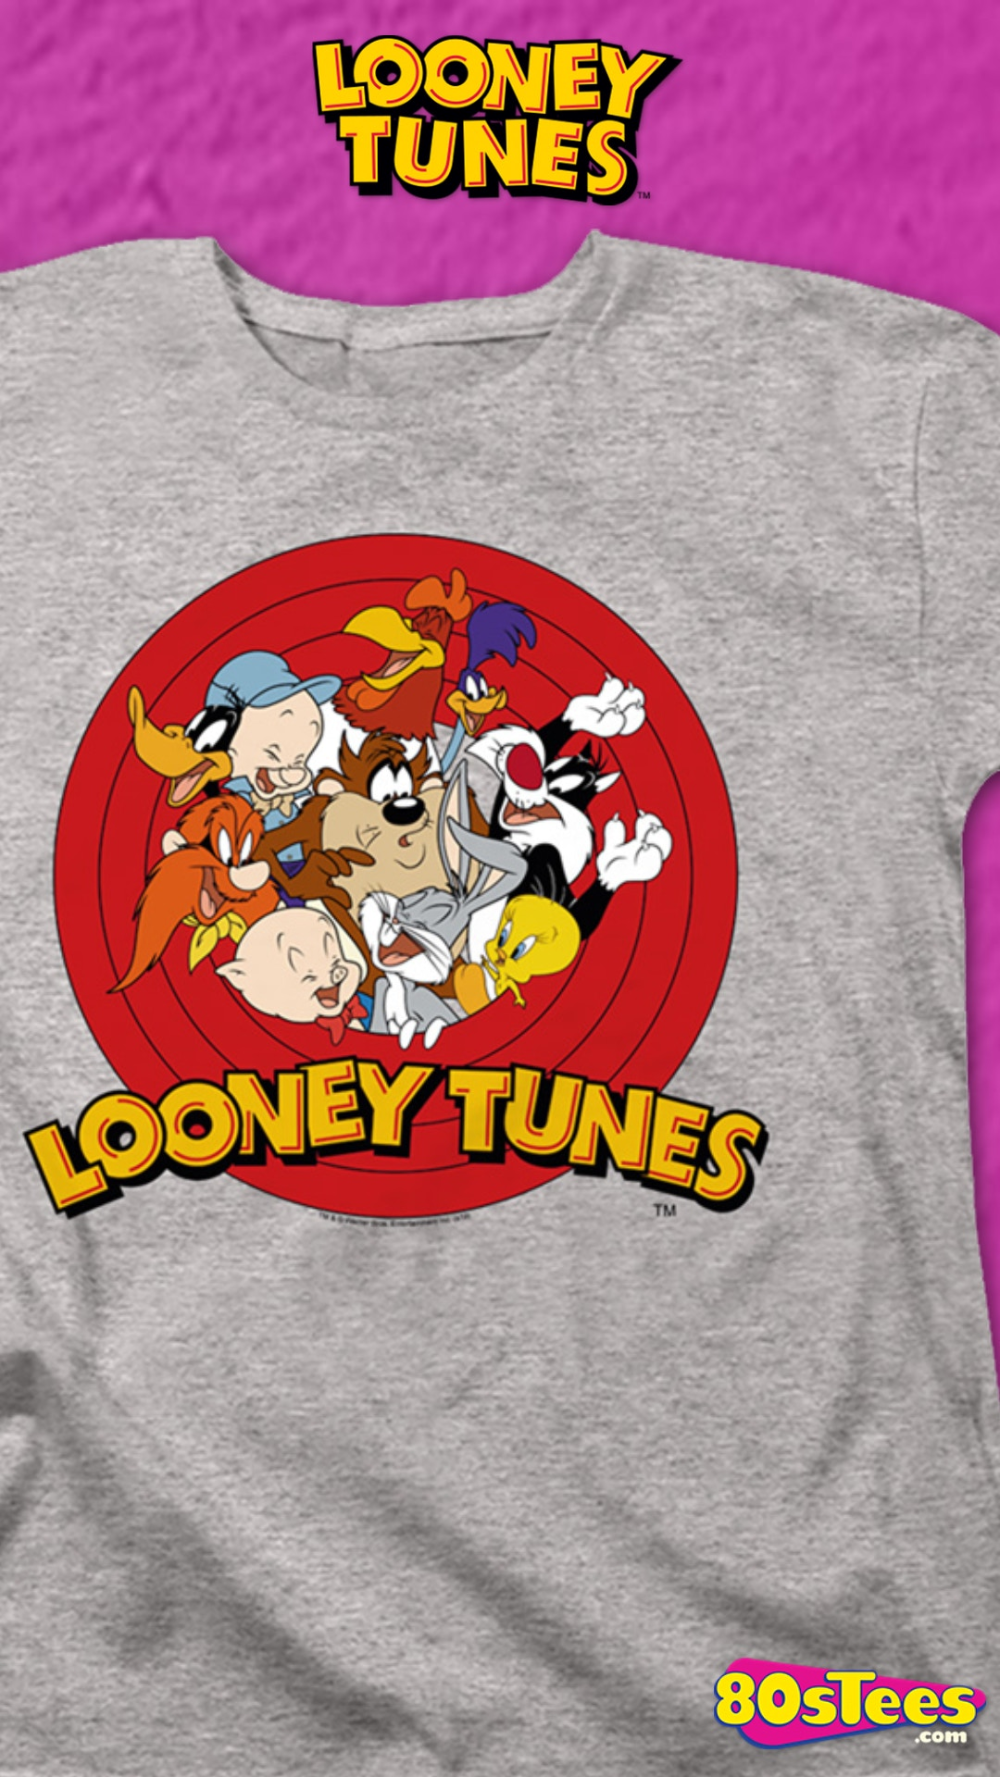 This Womens Looney Tunes Shirt Features The Iconic Characters Bugs Bunny Porky Pig Yosemite Sam Daffy Duck Elmer Fu Looney Tunes It Cast Comedy Short Films